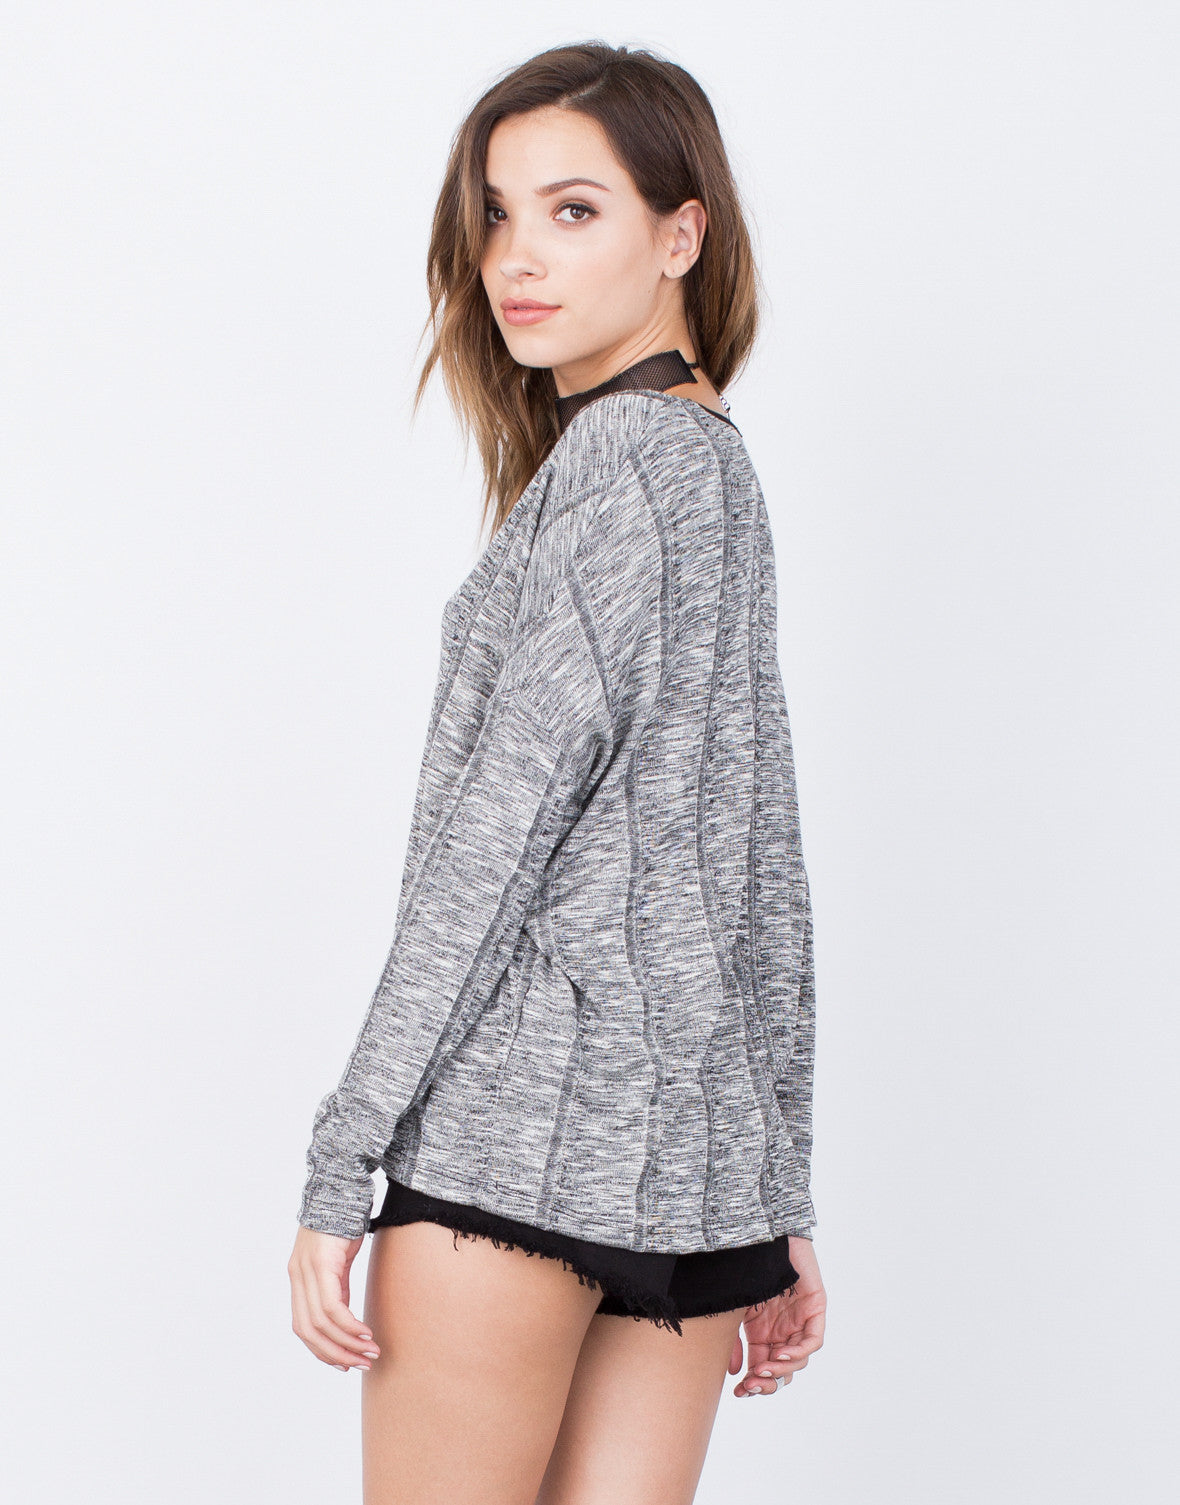 Back View of L/S Rib Knit Top